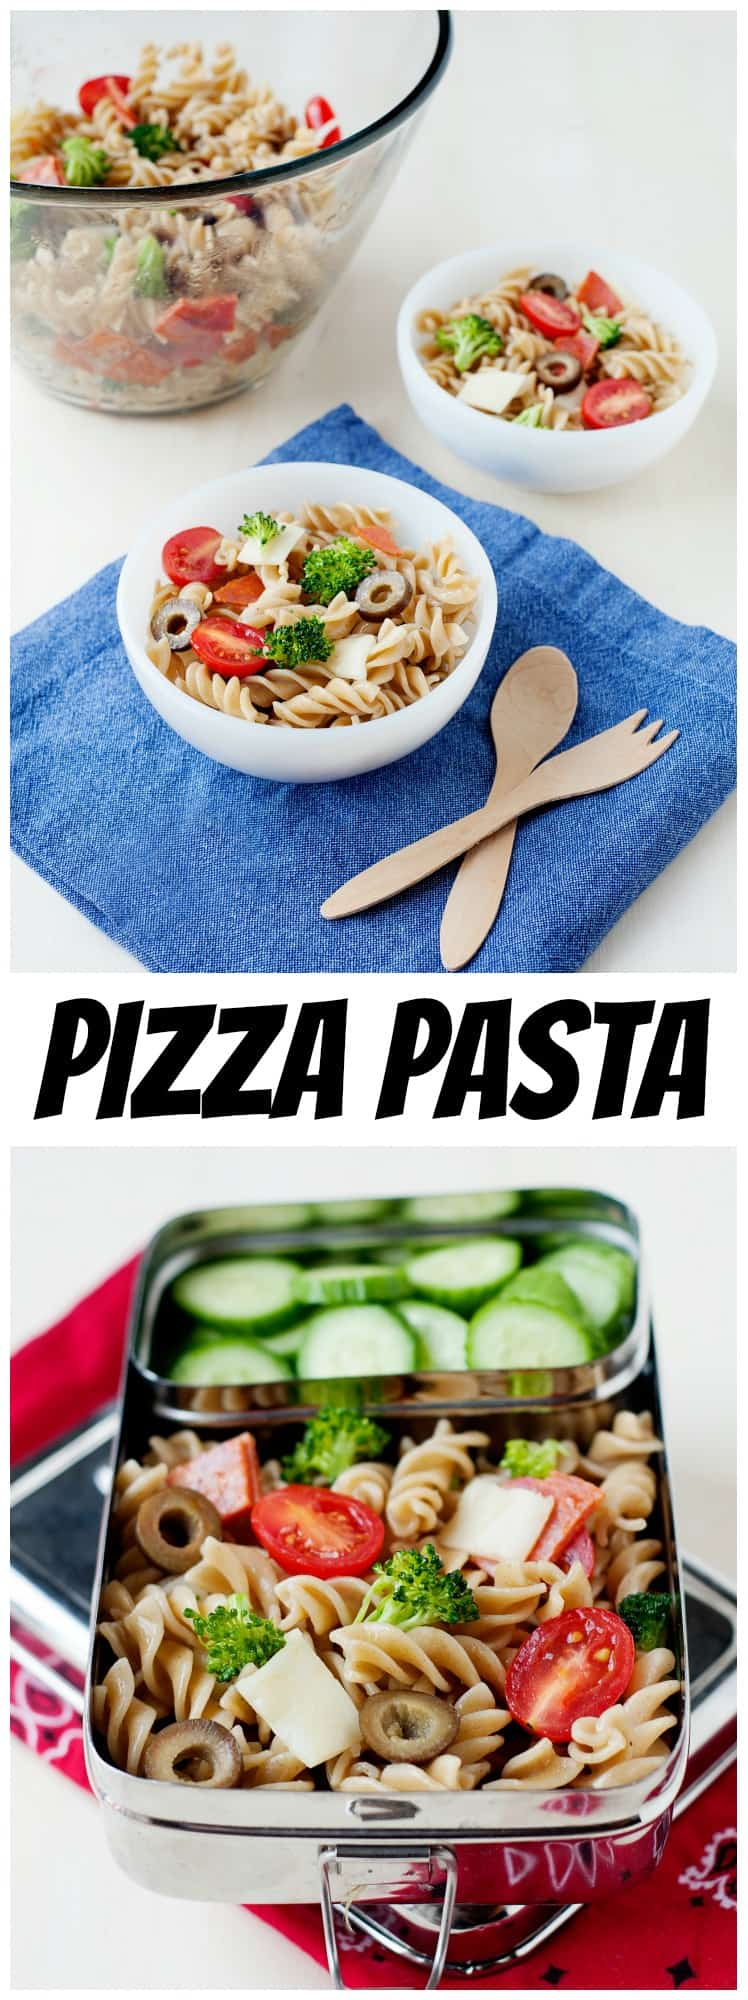 Add a little variety to your kids' lunchboxes with this easy pizza pasta salad recipe!